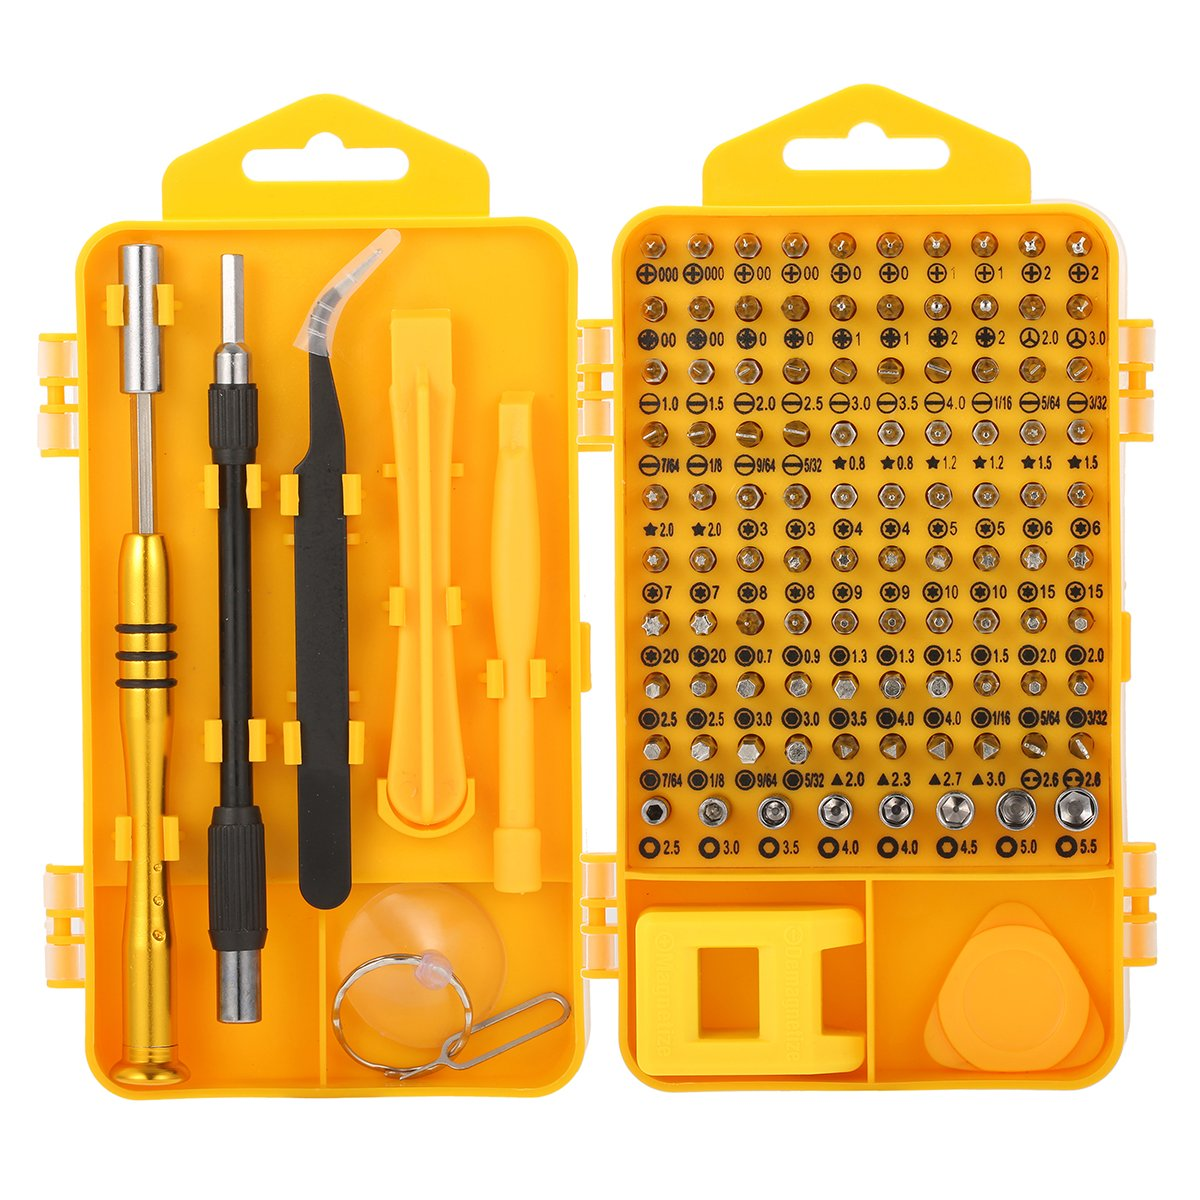 Screwdriver Tool Set, M.Way 108 in 1 Precision Screwdriver Set Multi-function Magnetic Tool Kit for iPhone X, 8, 7 below / Phone / Computer / Tablet / Xbox / PlayStation / electronic